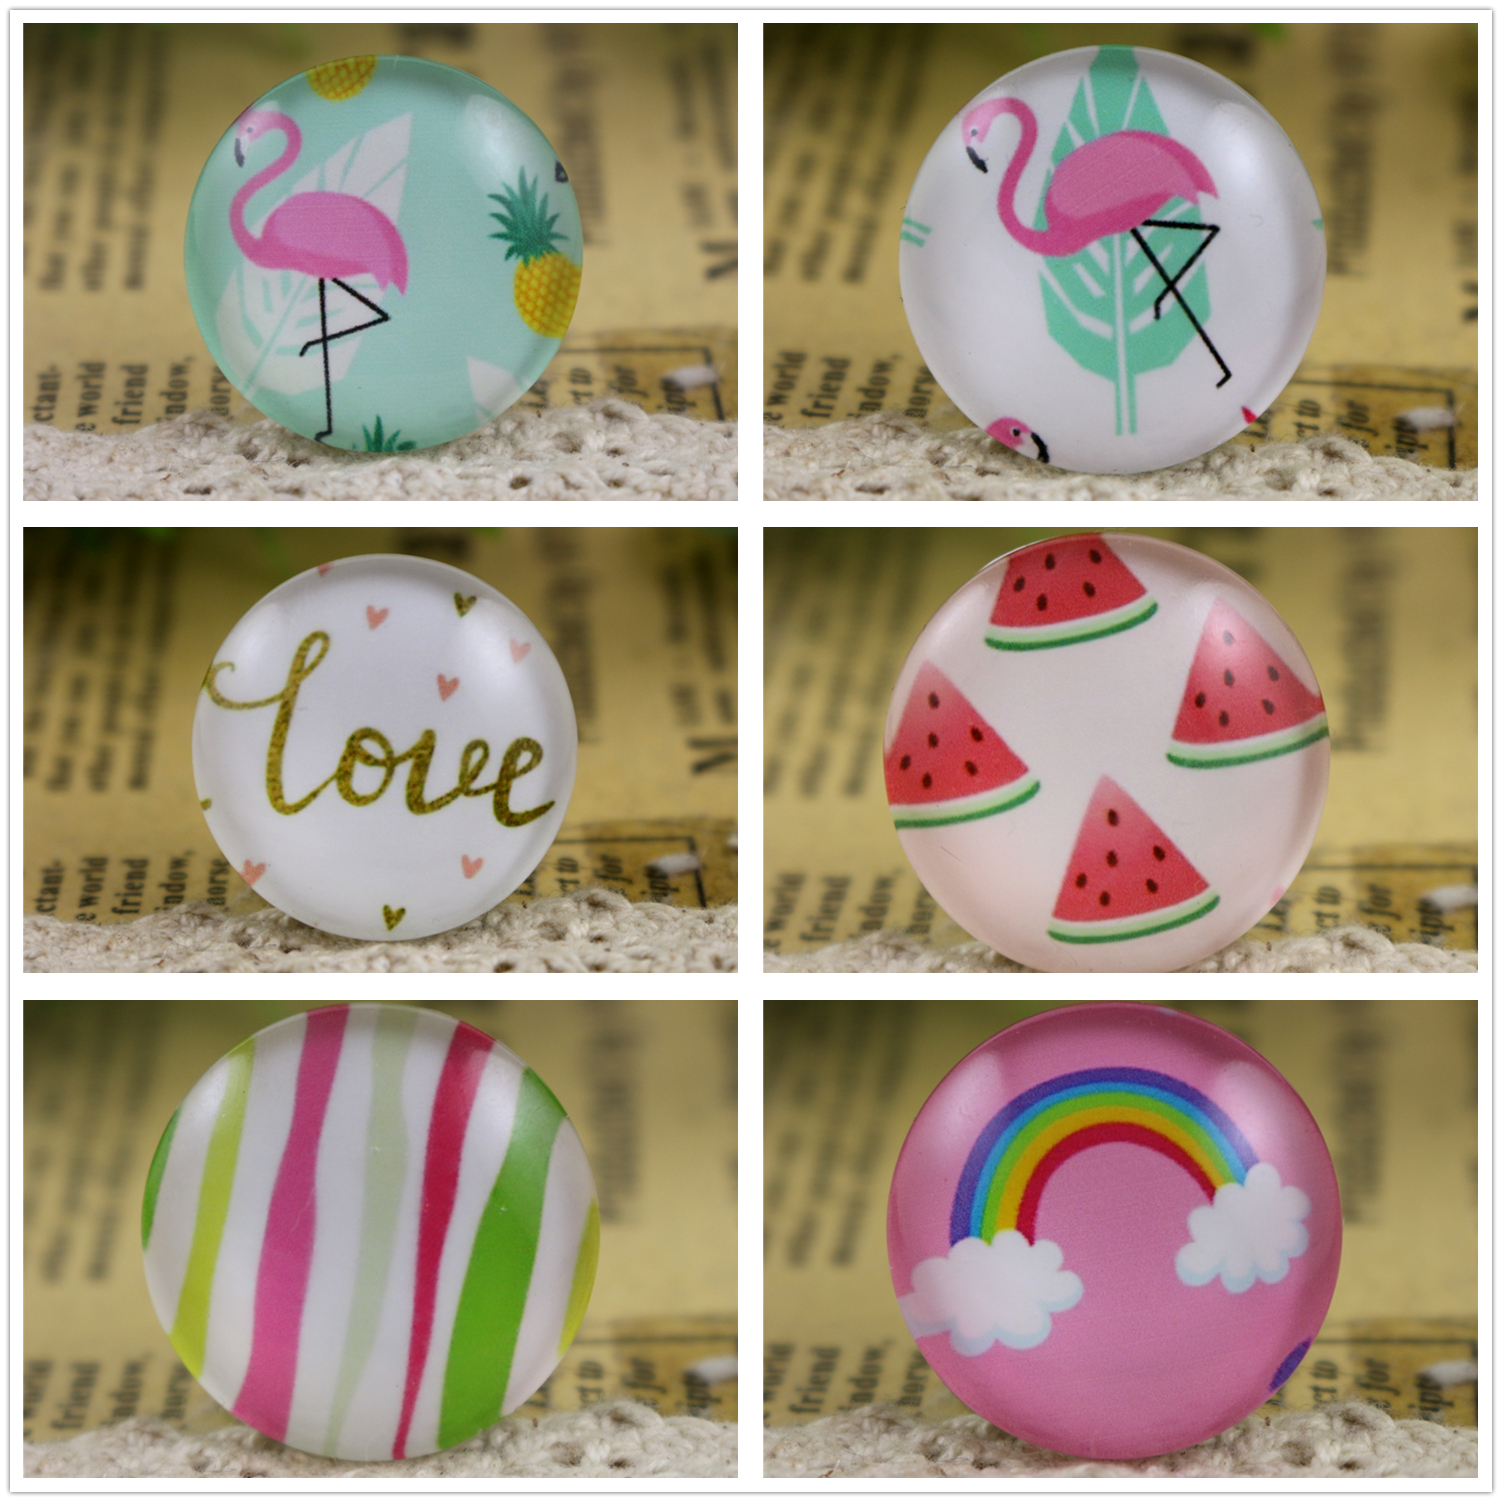 New Fashion 5pcs/Lot 25mm Rainbow Swan Handmade Photo Glass Cabochons Pattern Domed Jewelry Accessories Supplies